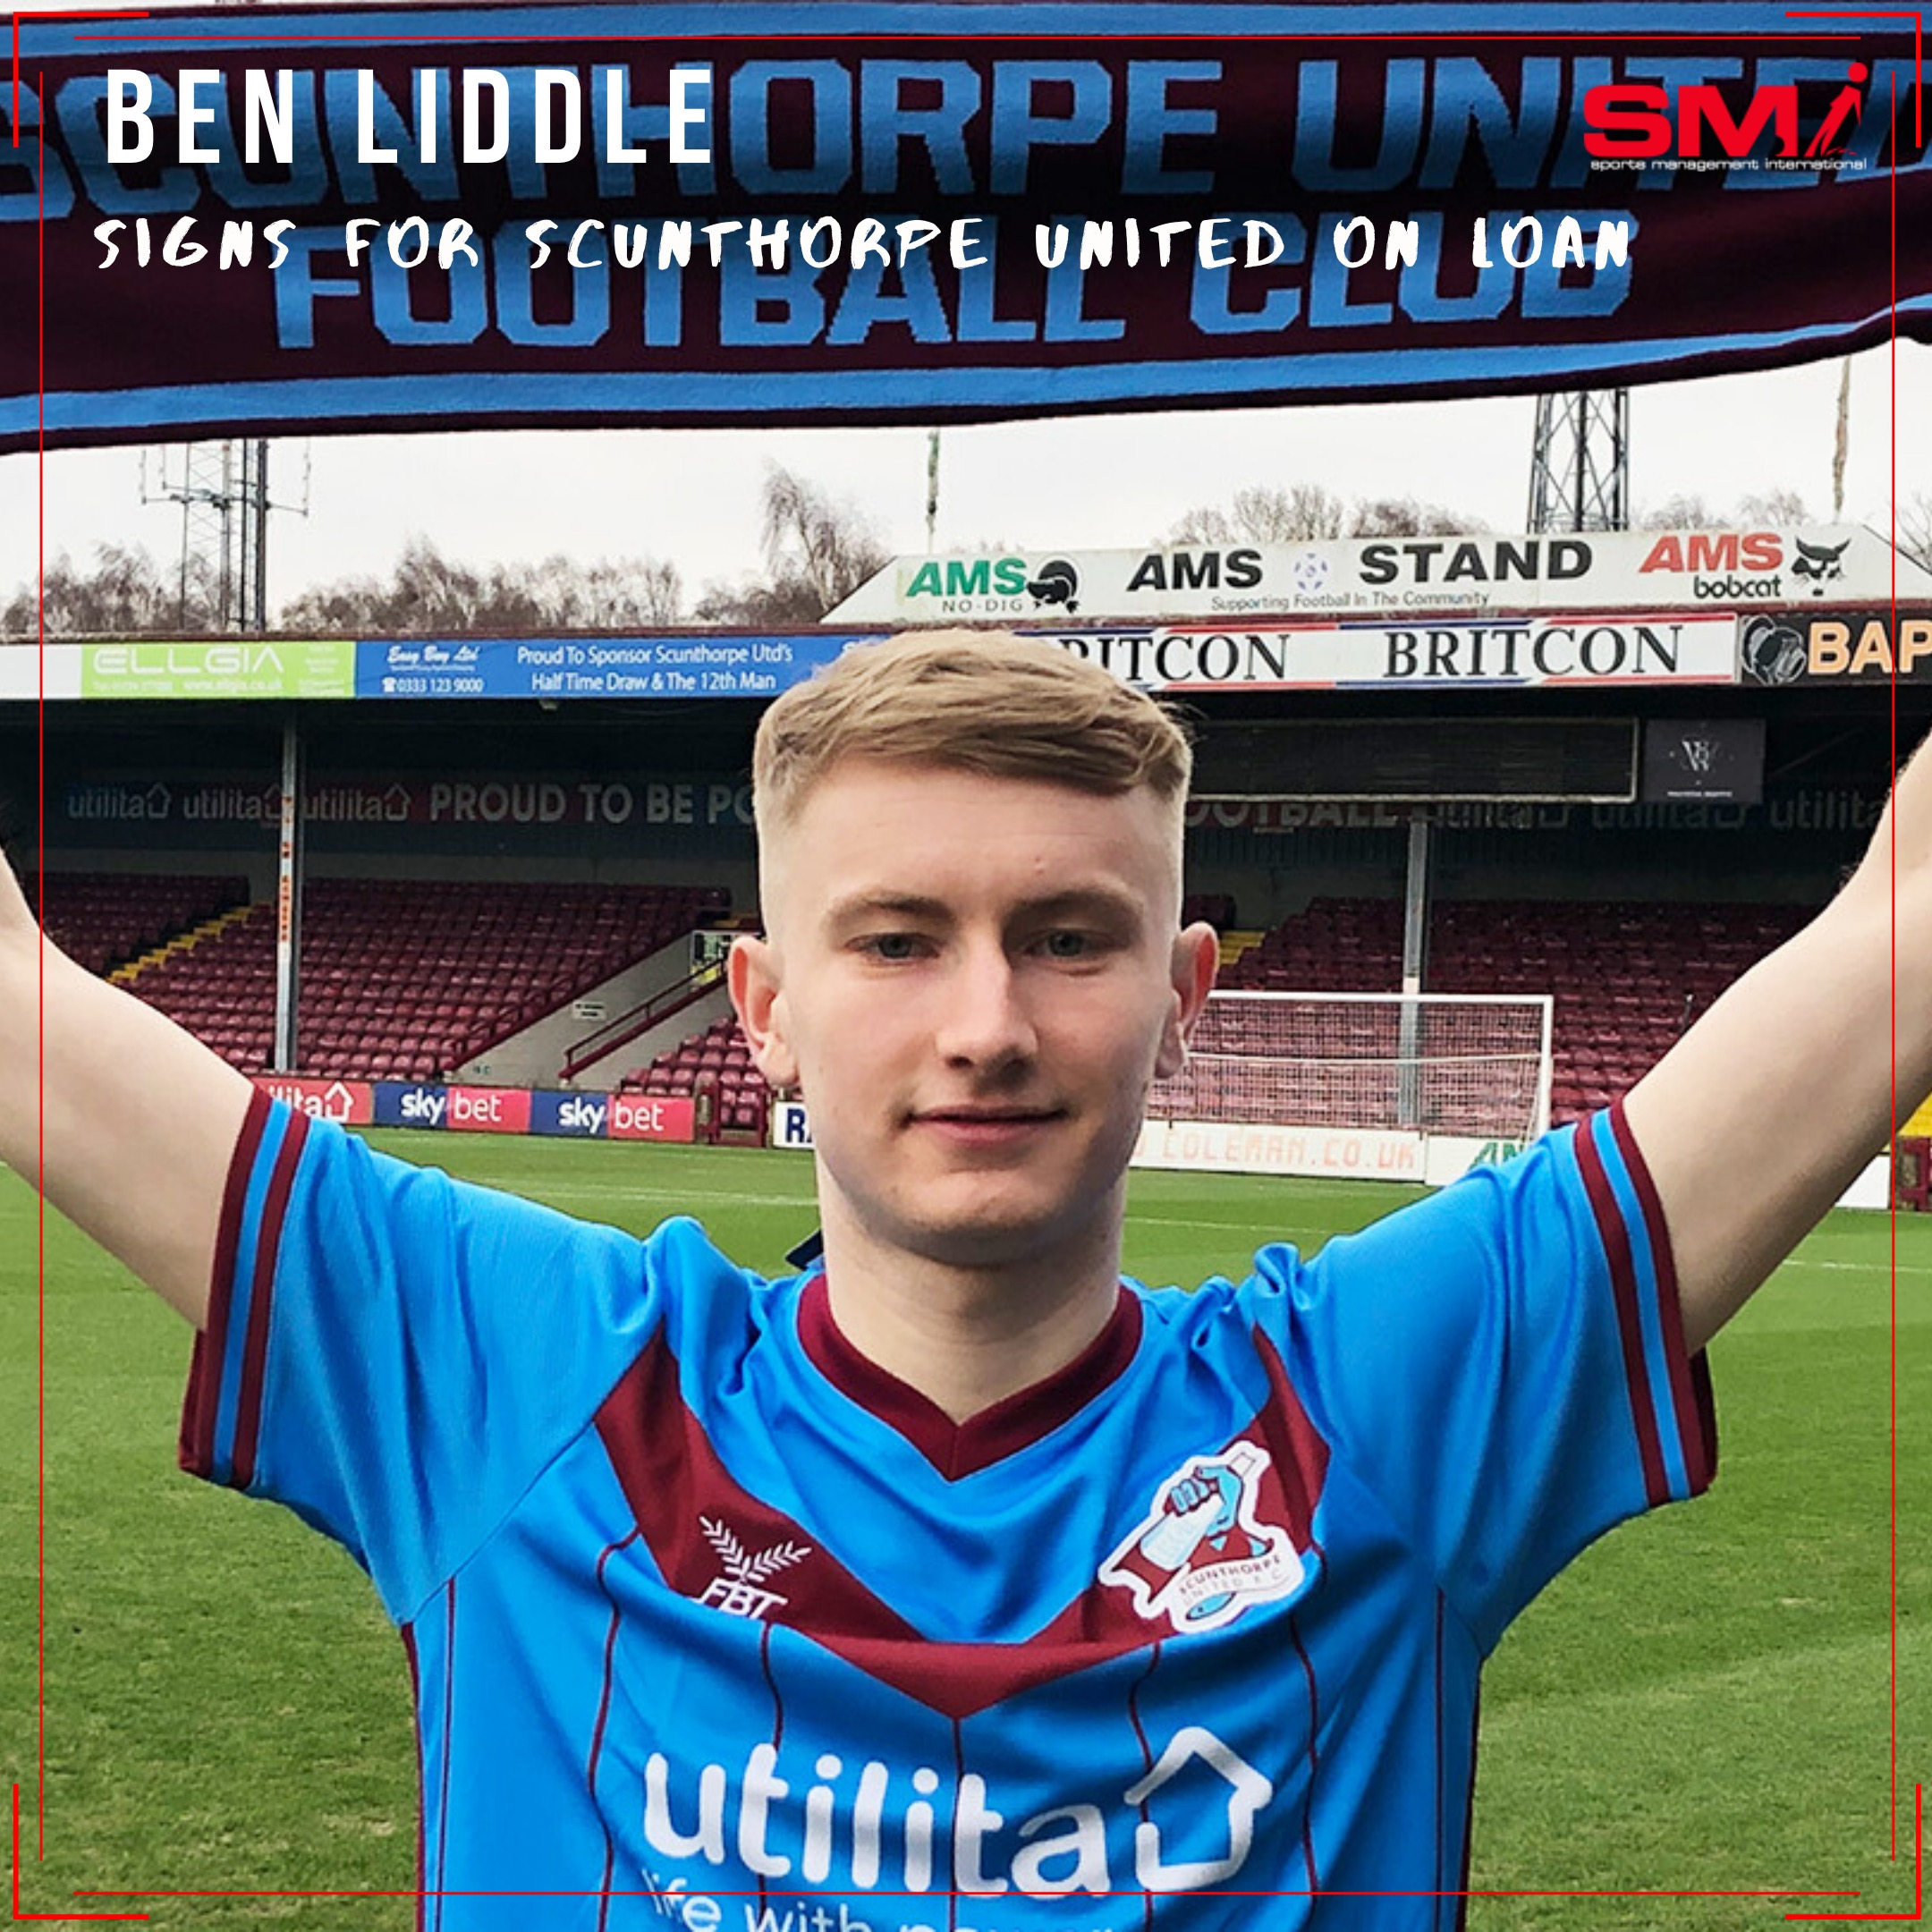 Ben Liddle seals move to Scunthorpe on loan